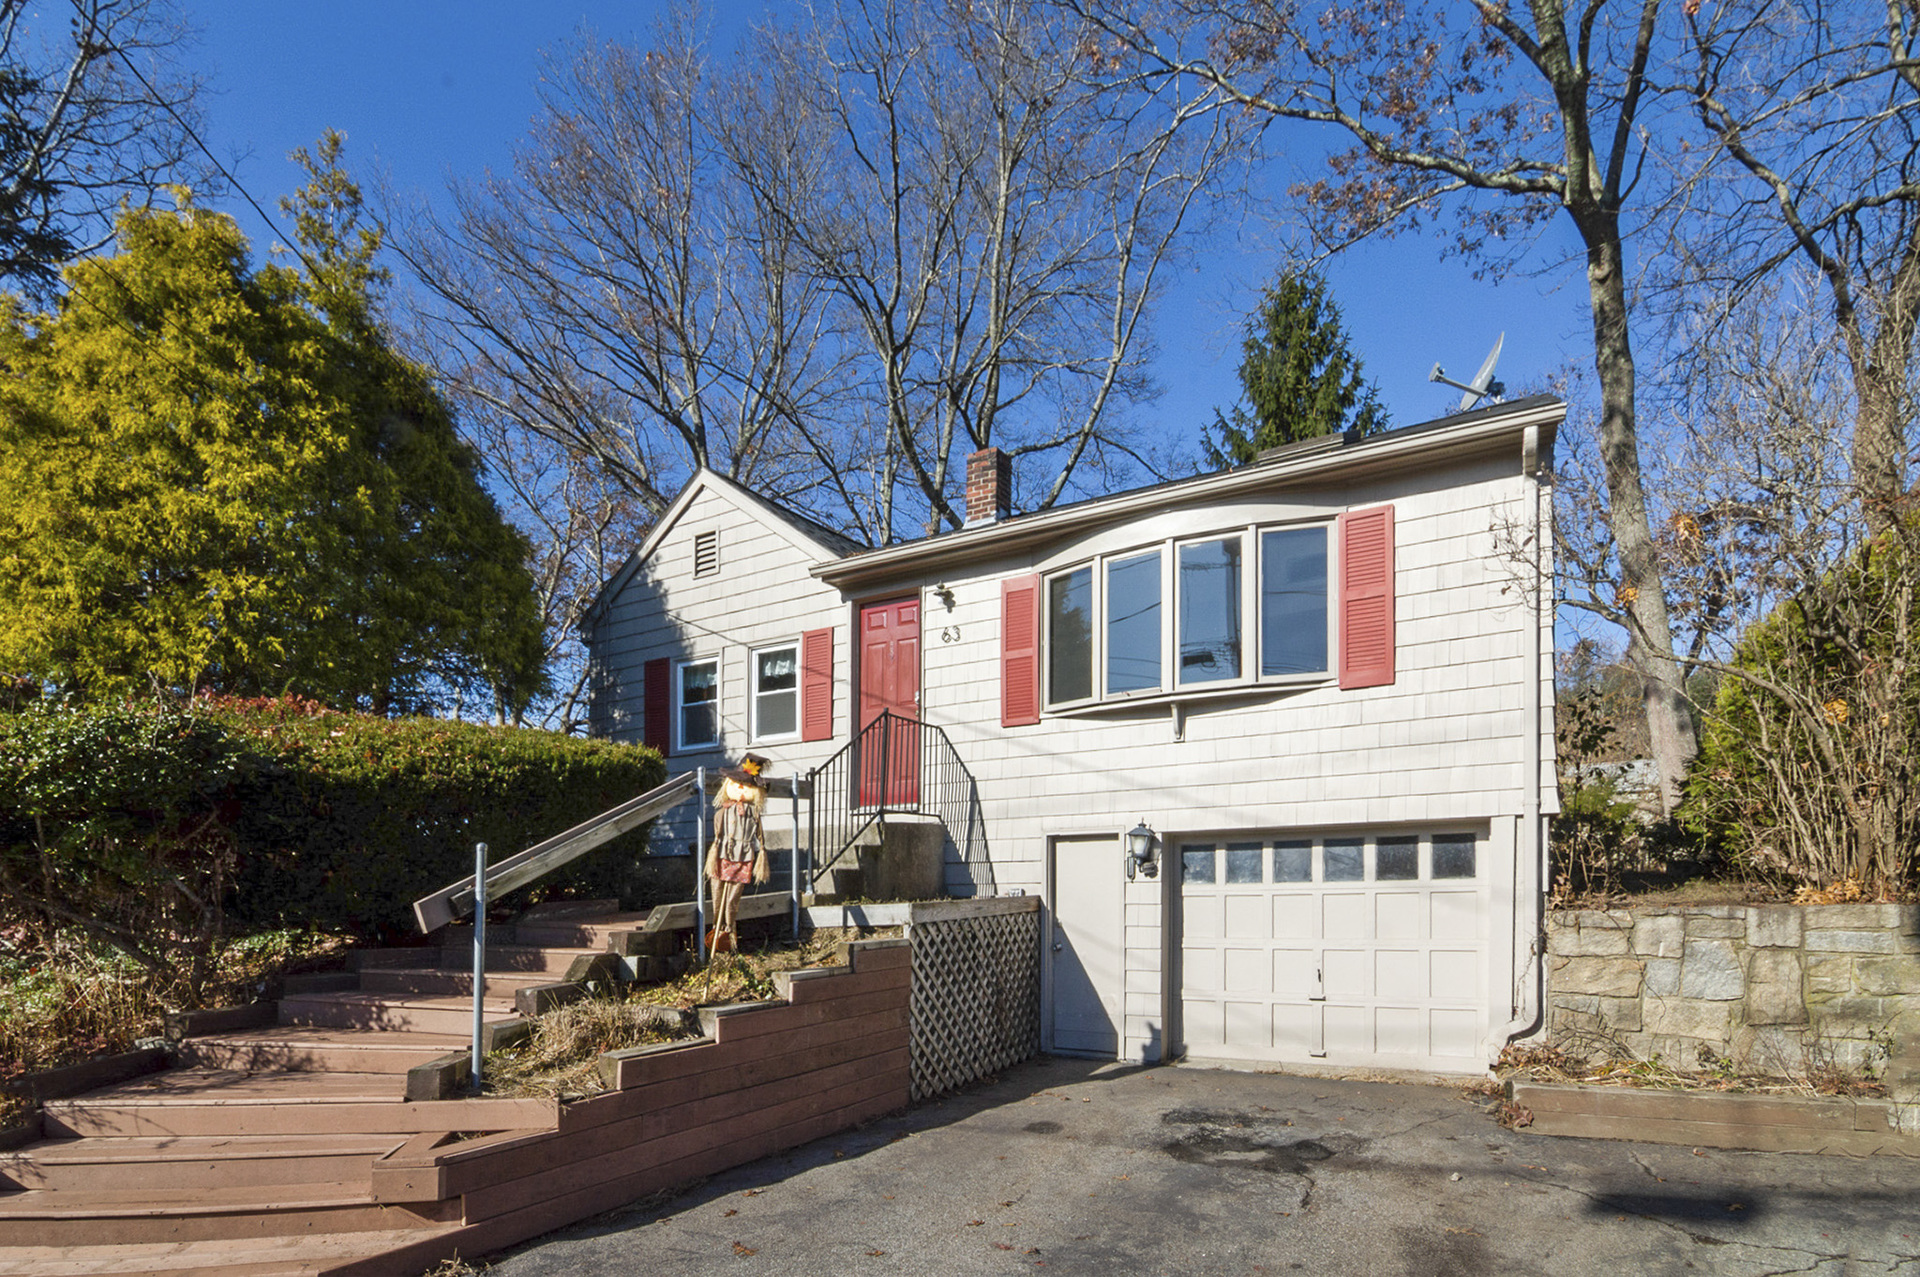 63 Twin Lakes Ave, Coventry, Rhode Island I Sun 11/24 from 11:00-12:30PM